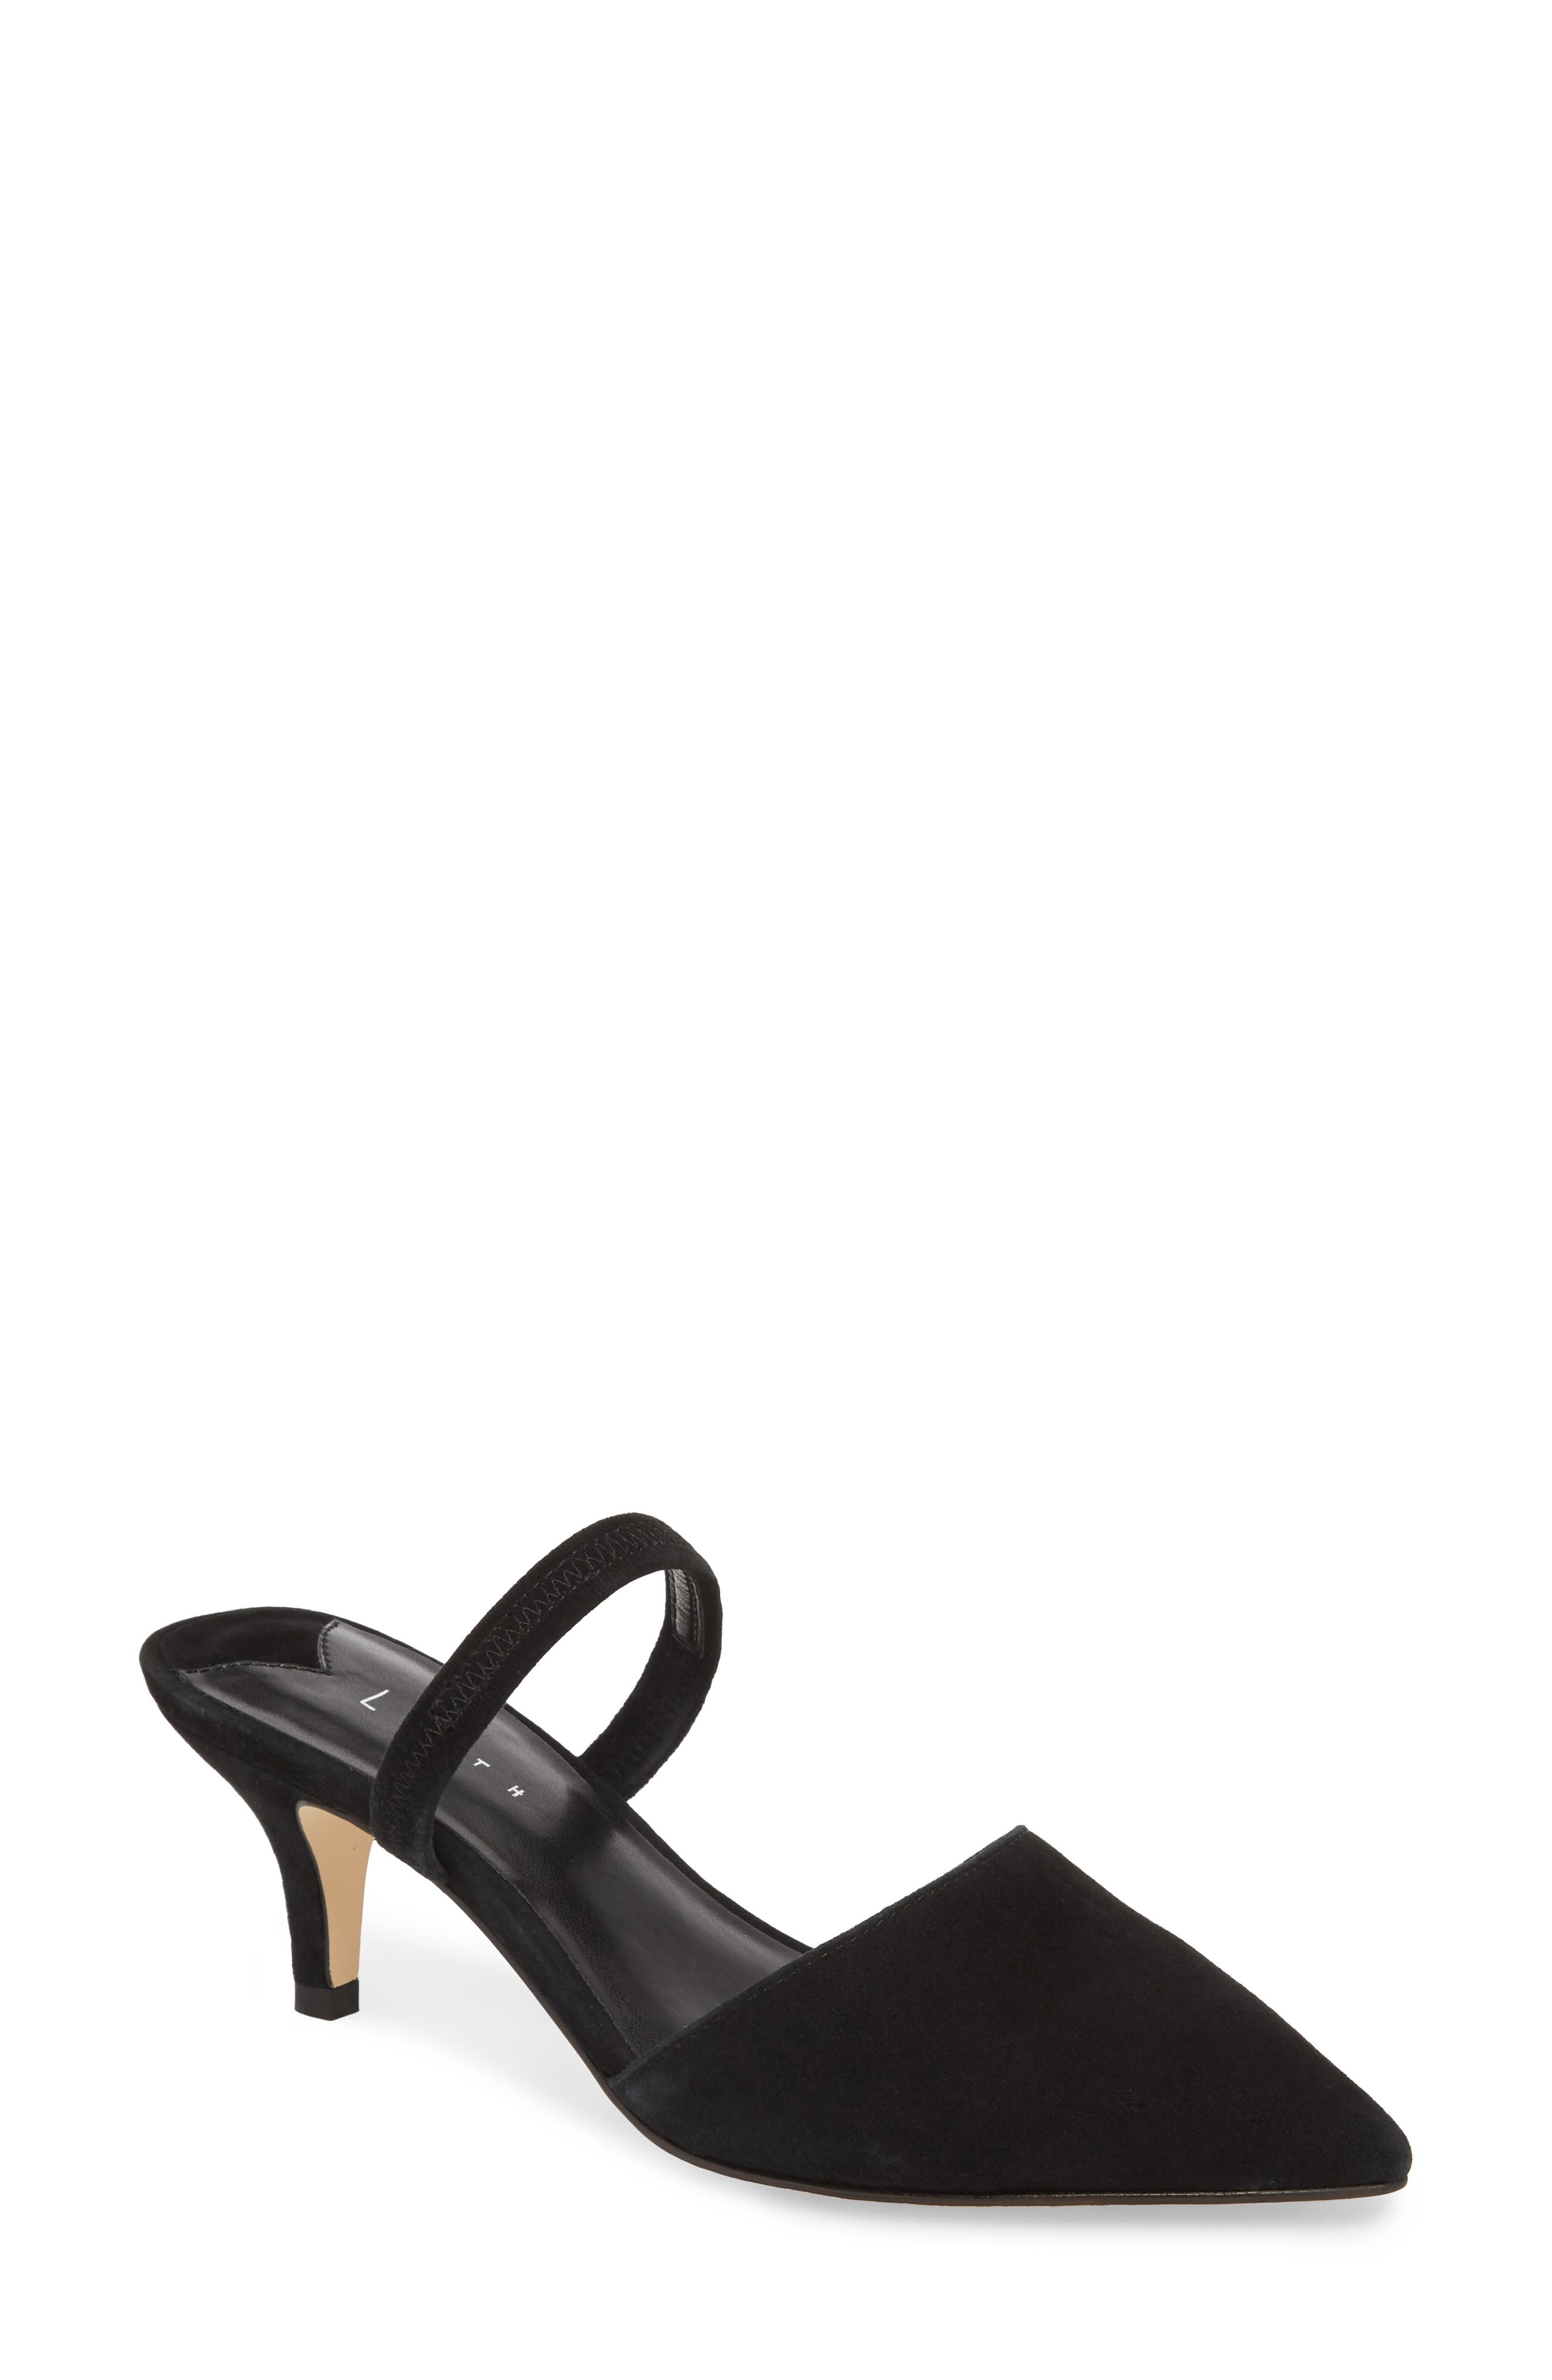 Nikki Convertible Pump,                         Main,                         color, BLACK SUEDE